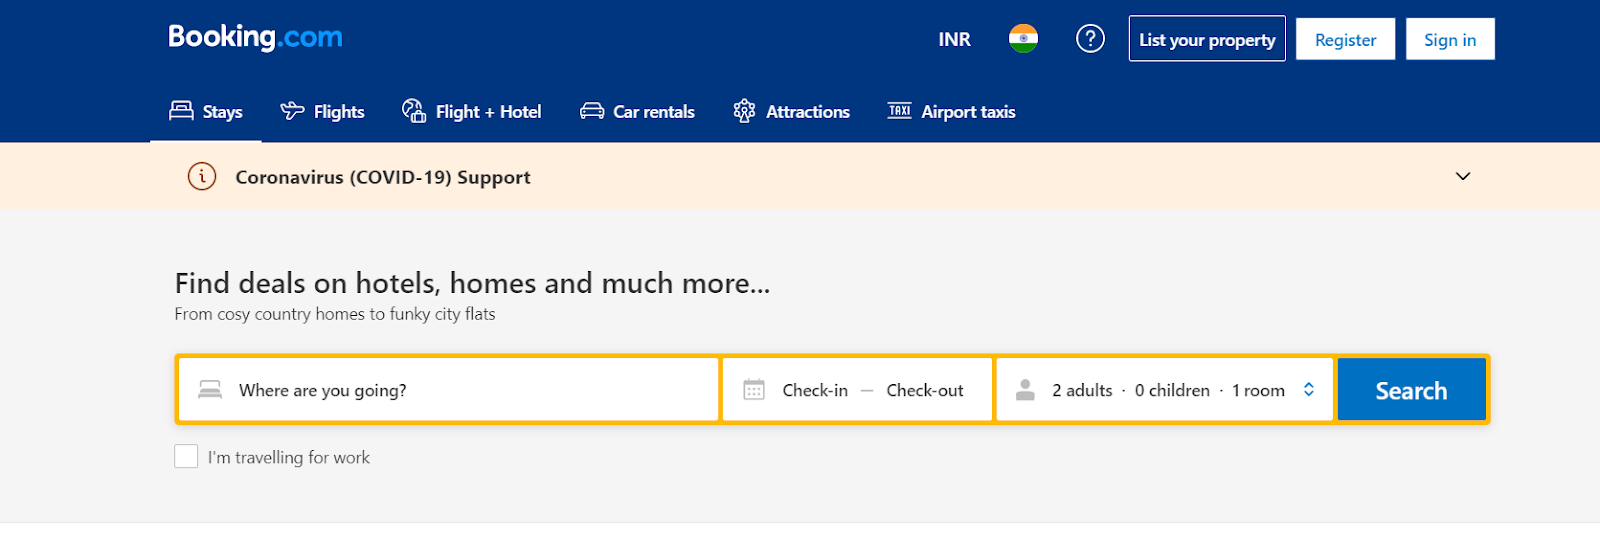 Screenshot of Booking.com - Travel Search Engine